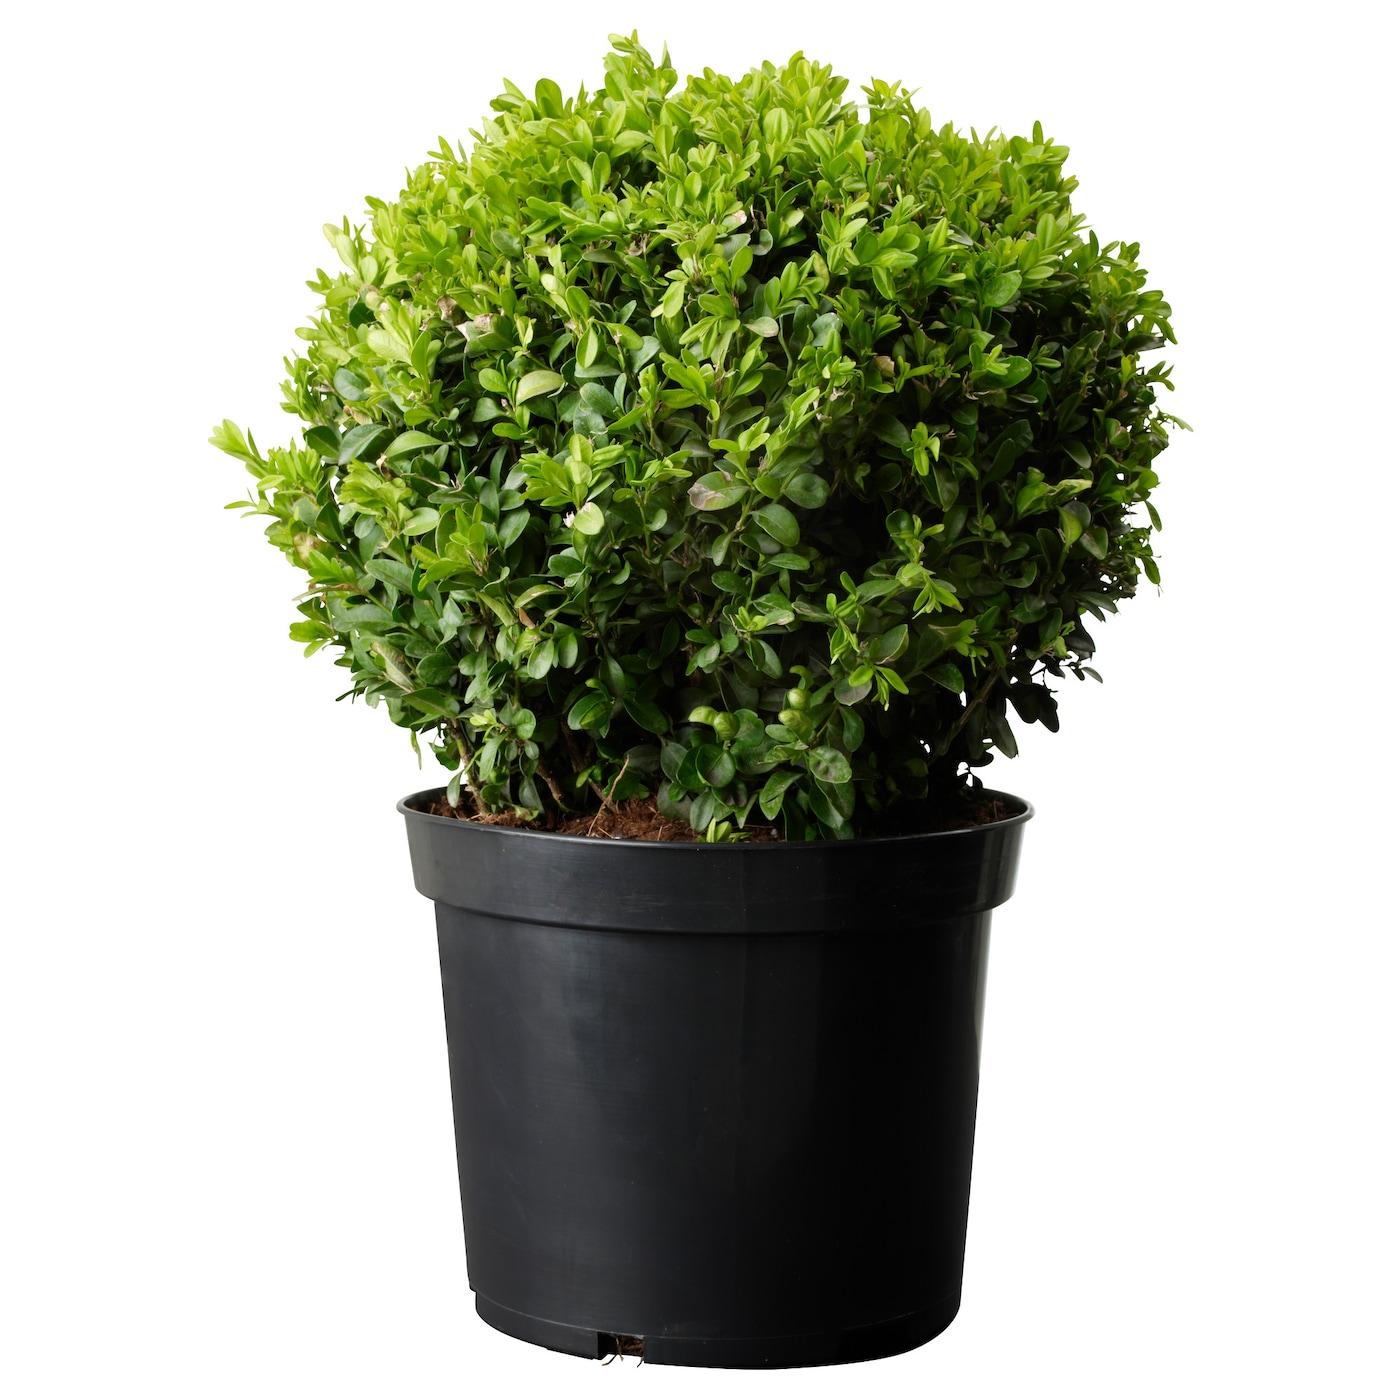 IKEA BUXUS SEMPERVIRENS potted plant